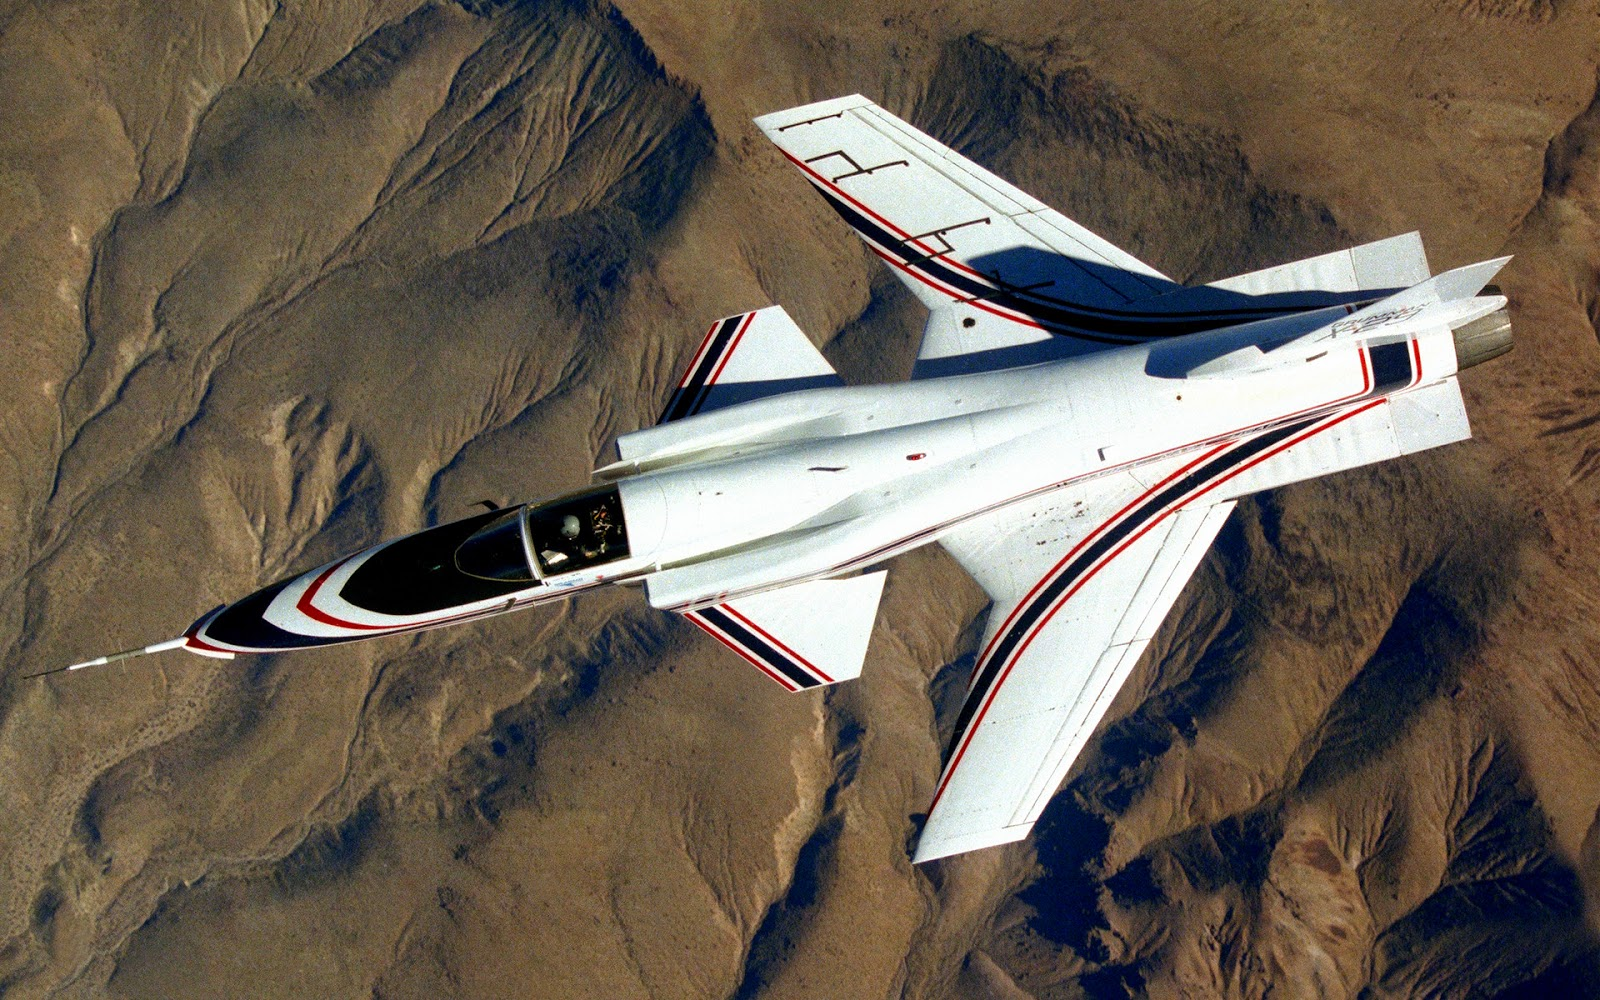 Ultimate Collection Of Rare Historical Photos. A Big Piece Of History (200 Pictures) - Grumman X-29